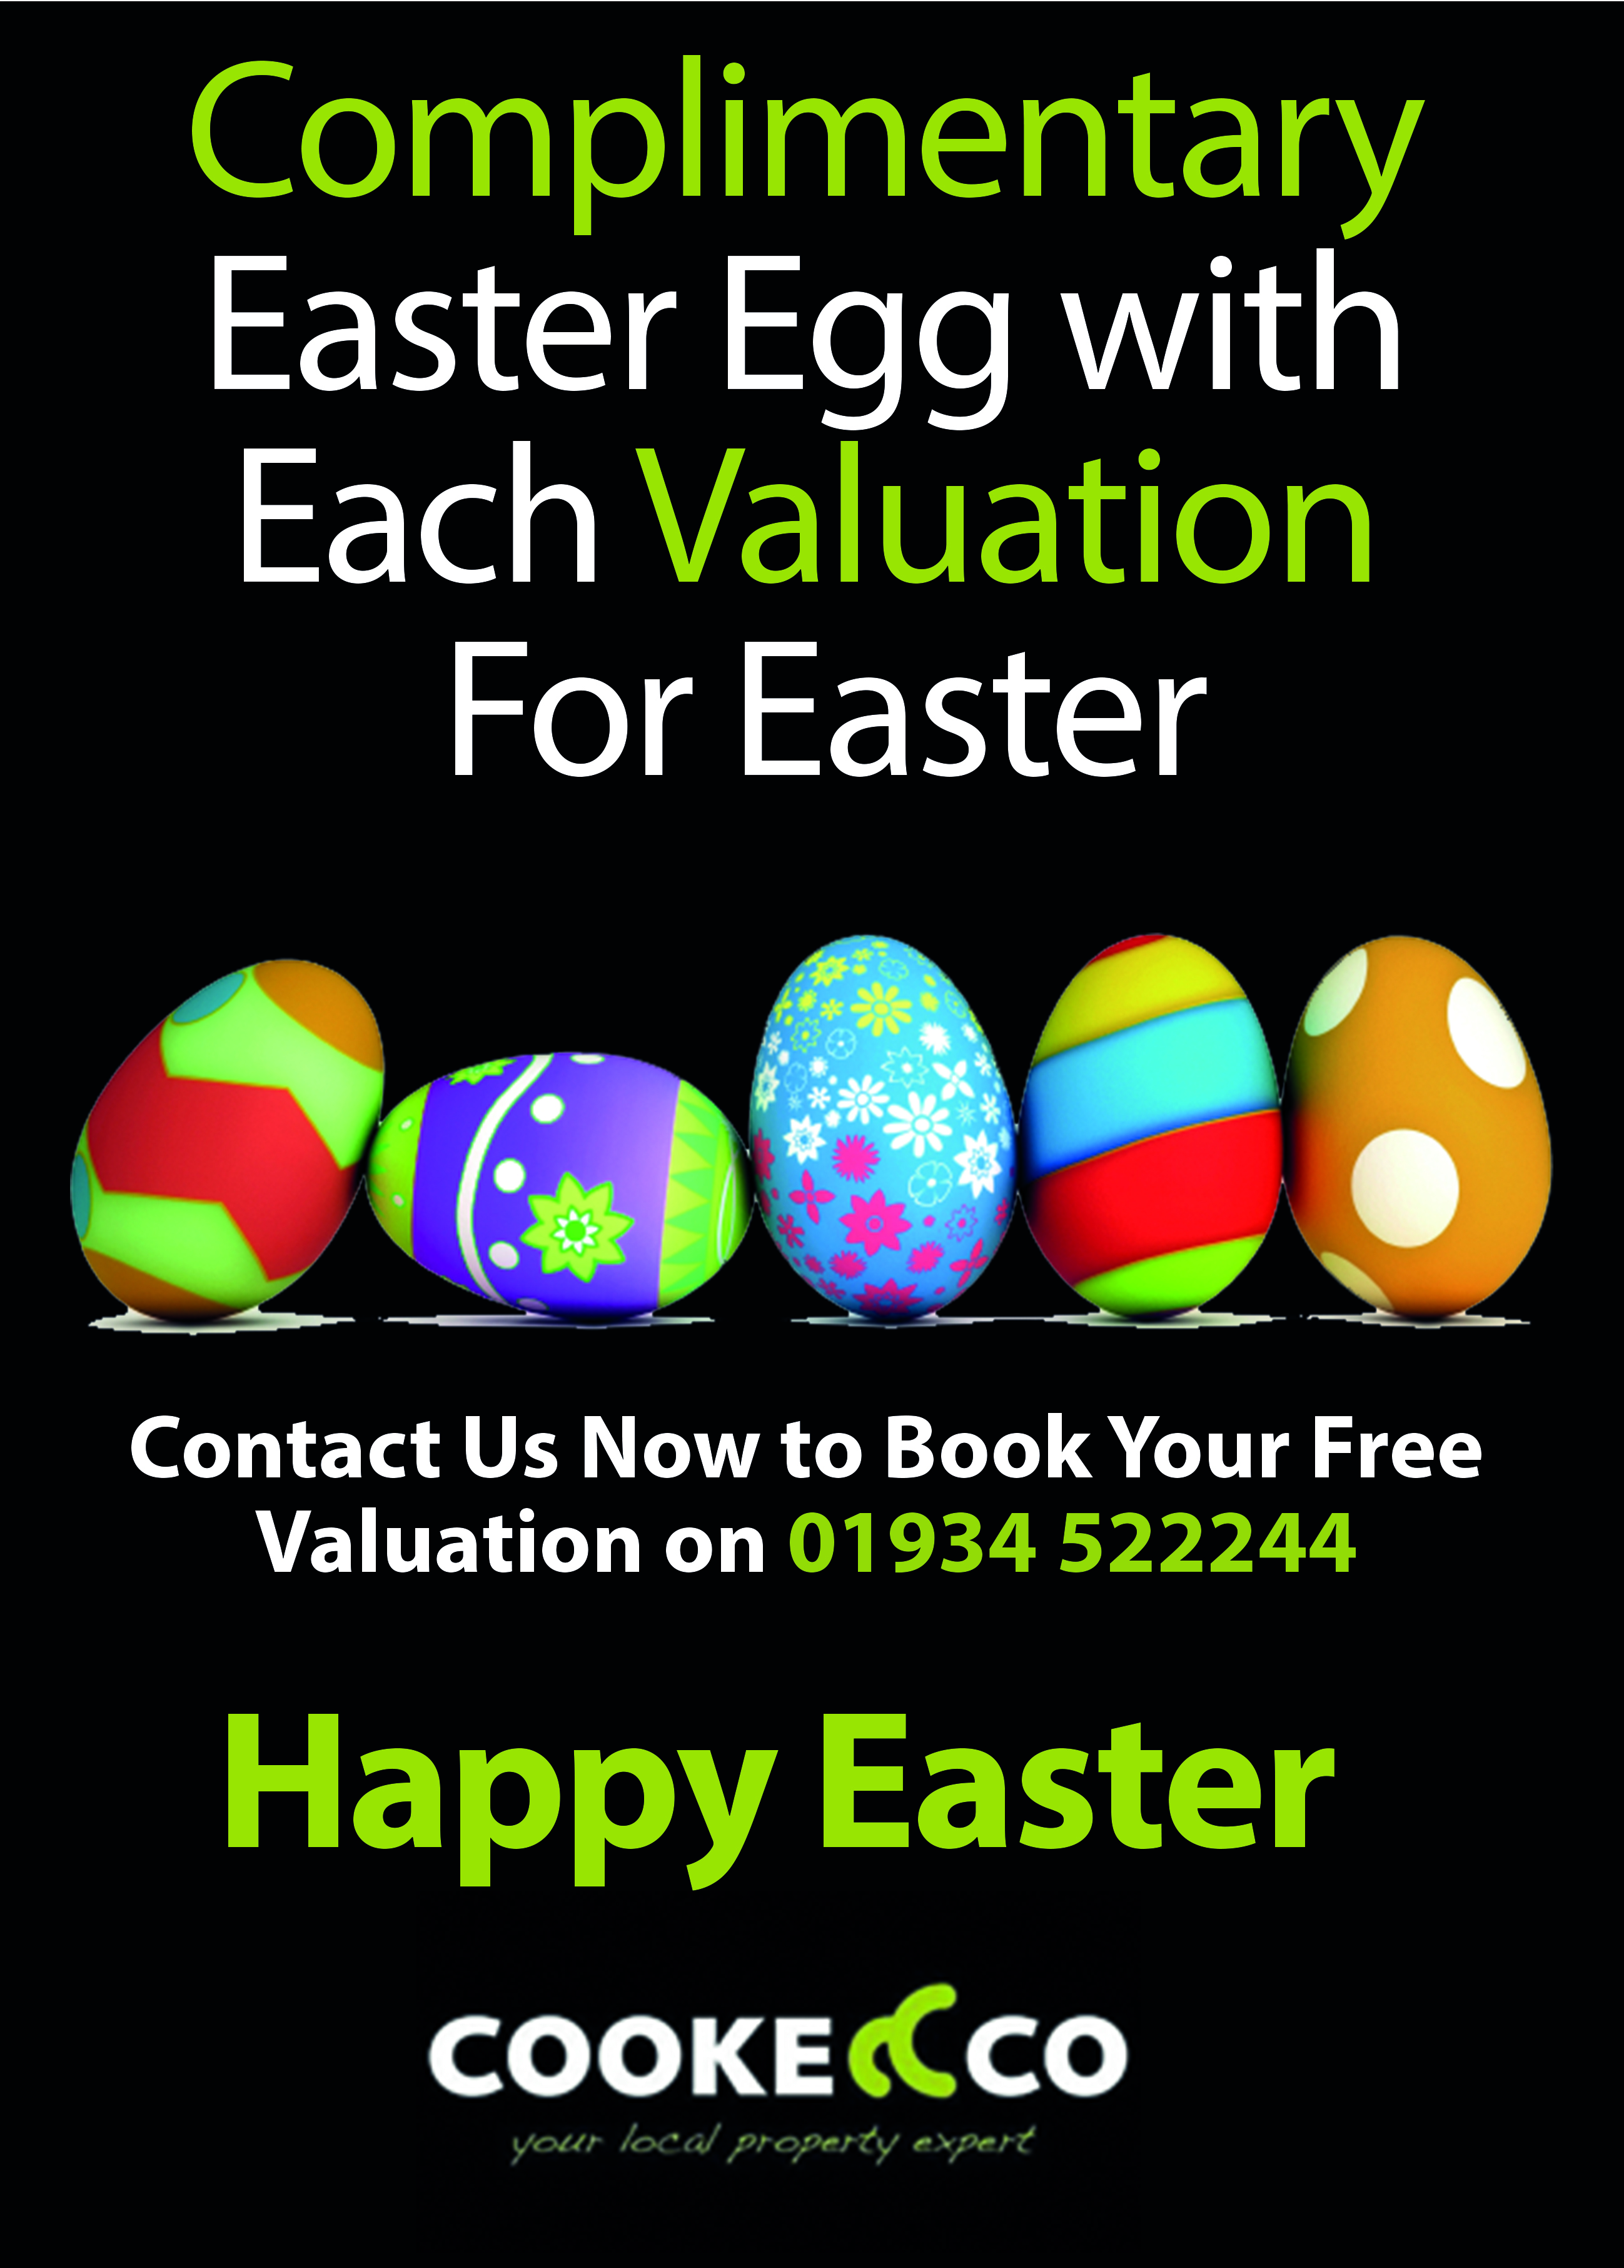 Get a Free Easter Egg this Easter with Cooke & Co.